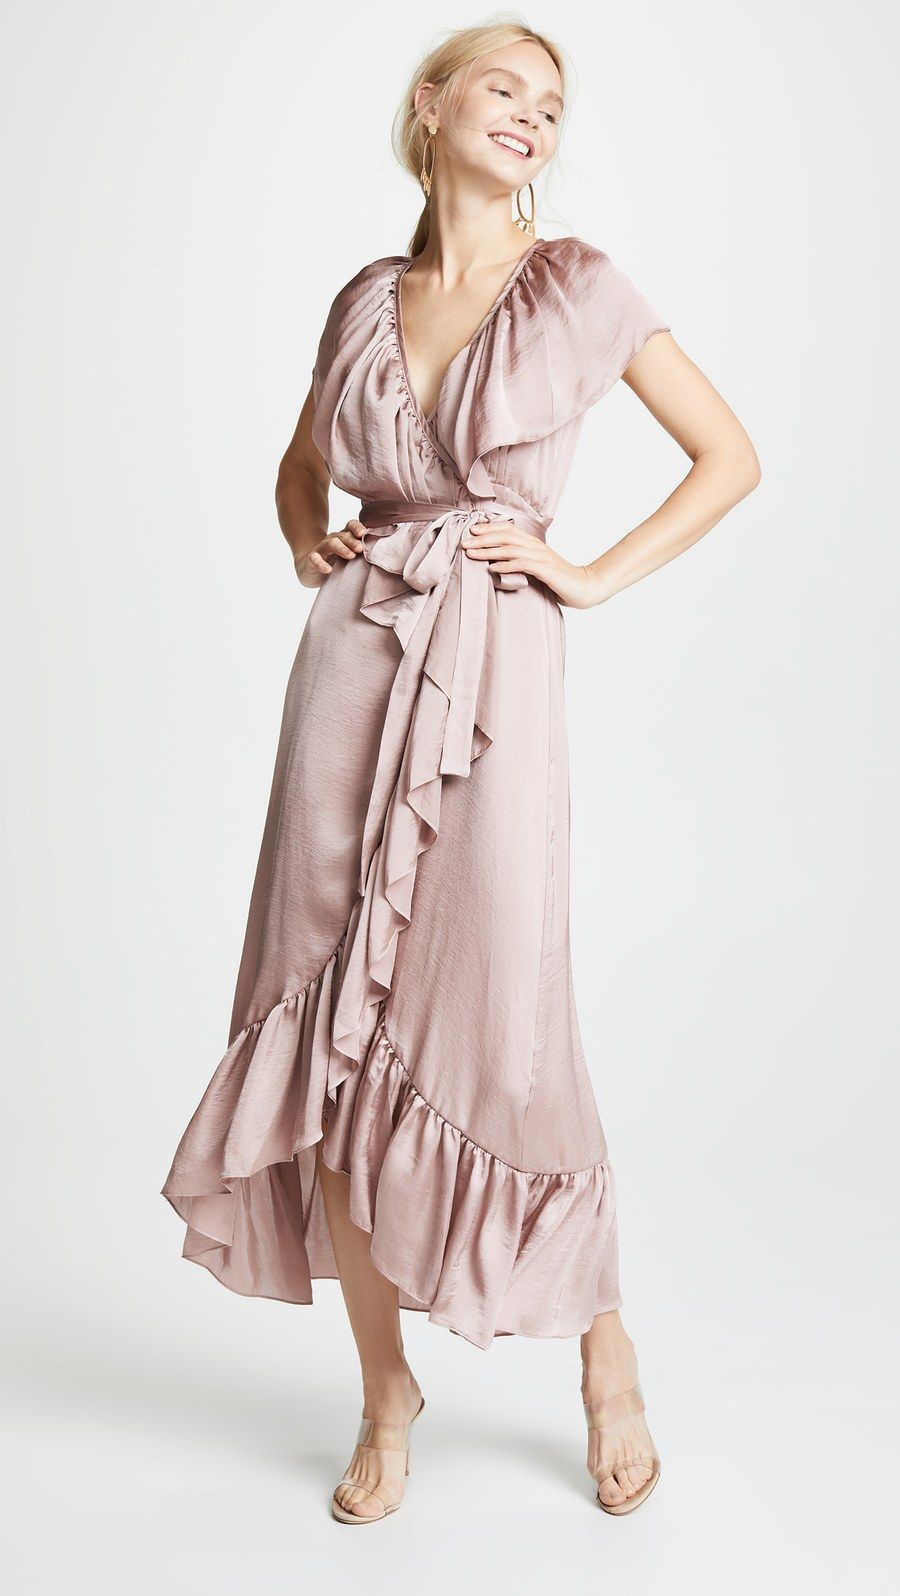 e3d2c2b90d0 31 Mother of the Bride Dresses You Can Buy Online